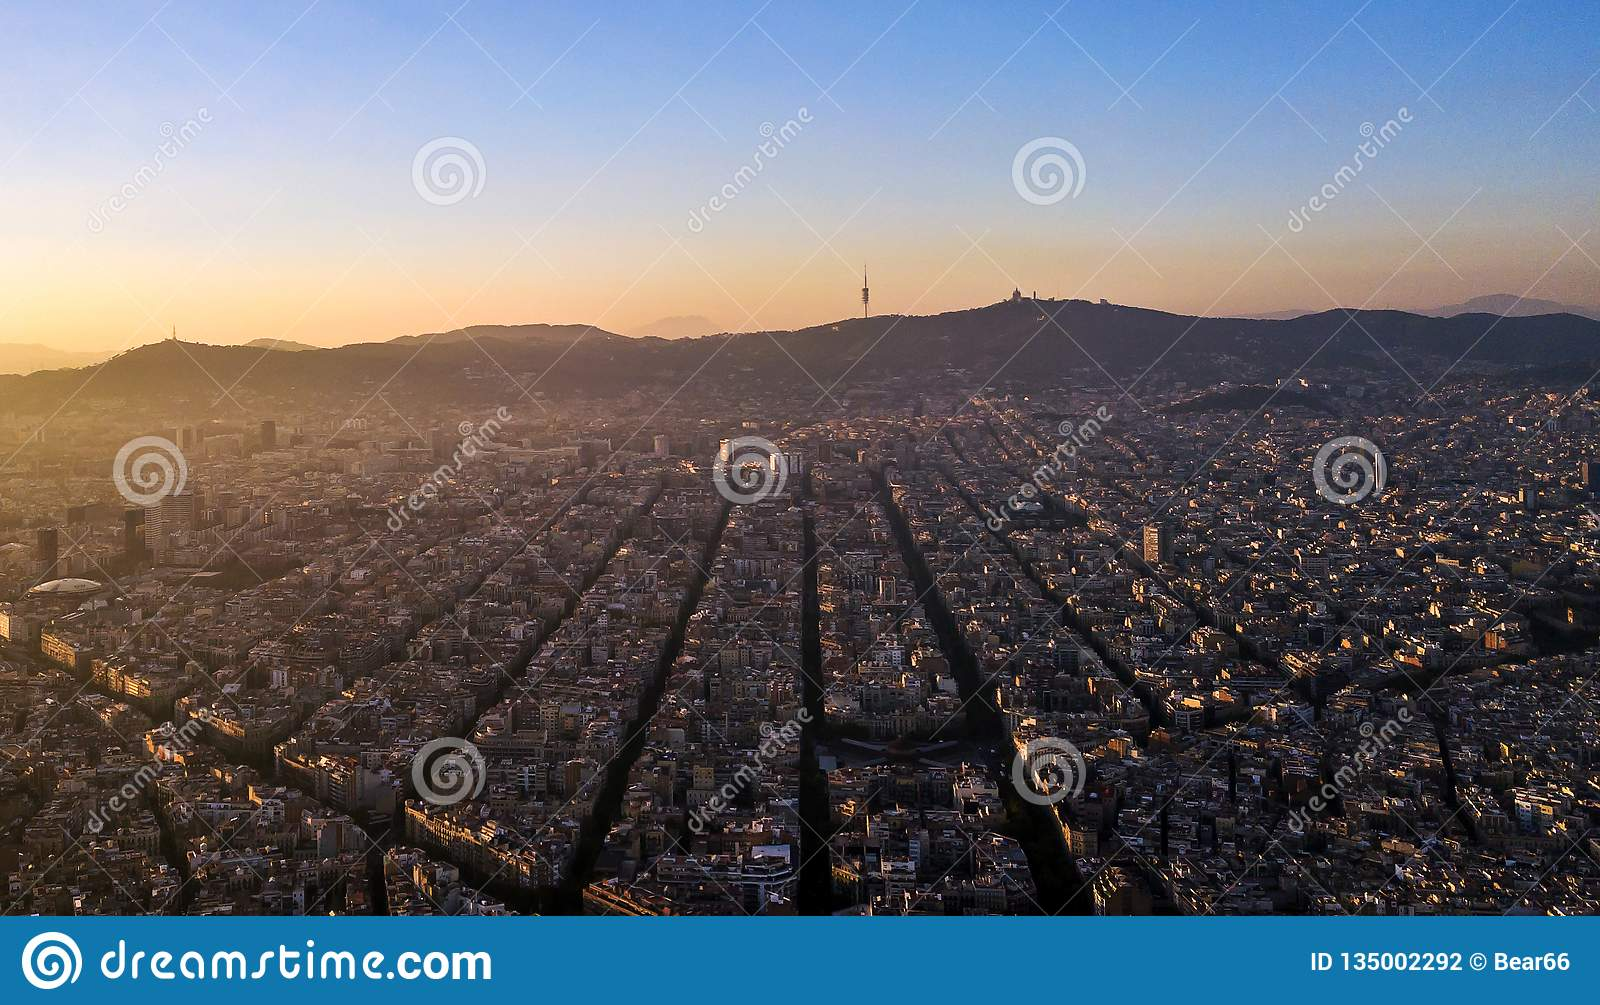 Barcelona seen from drone